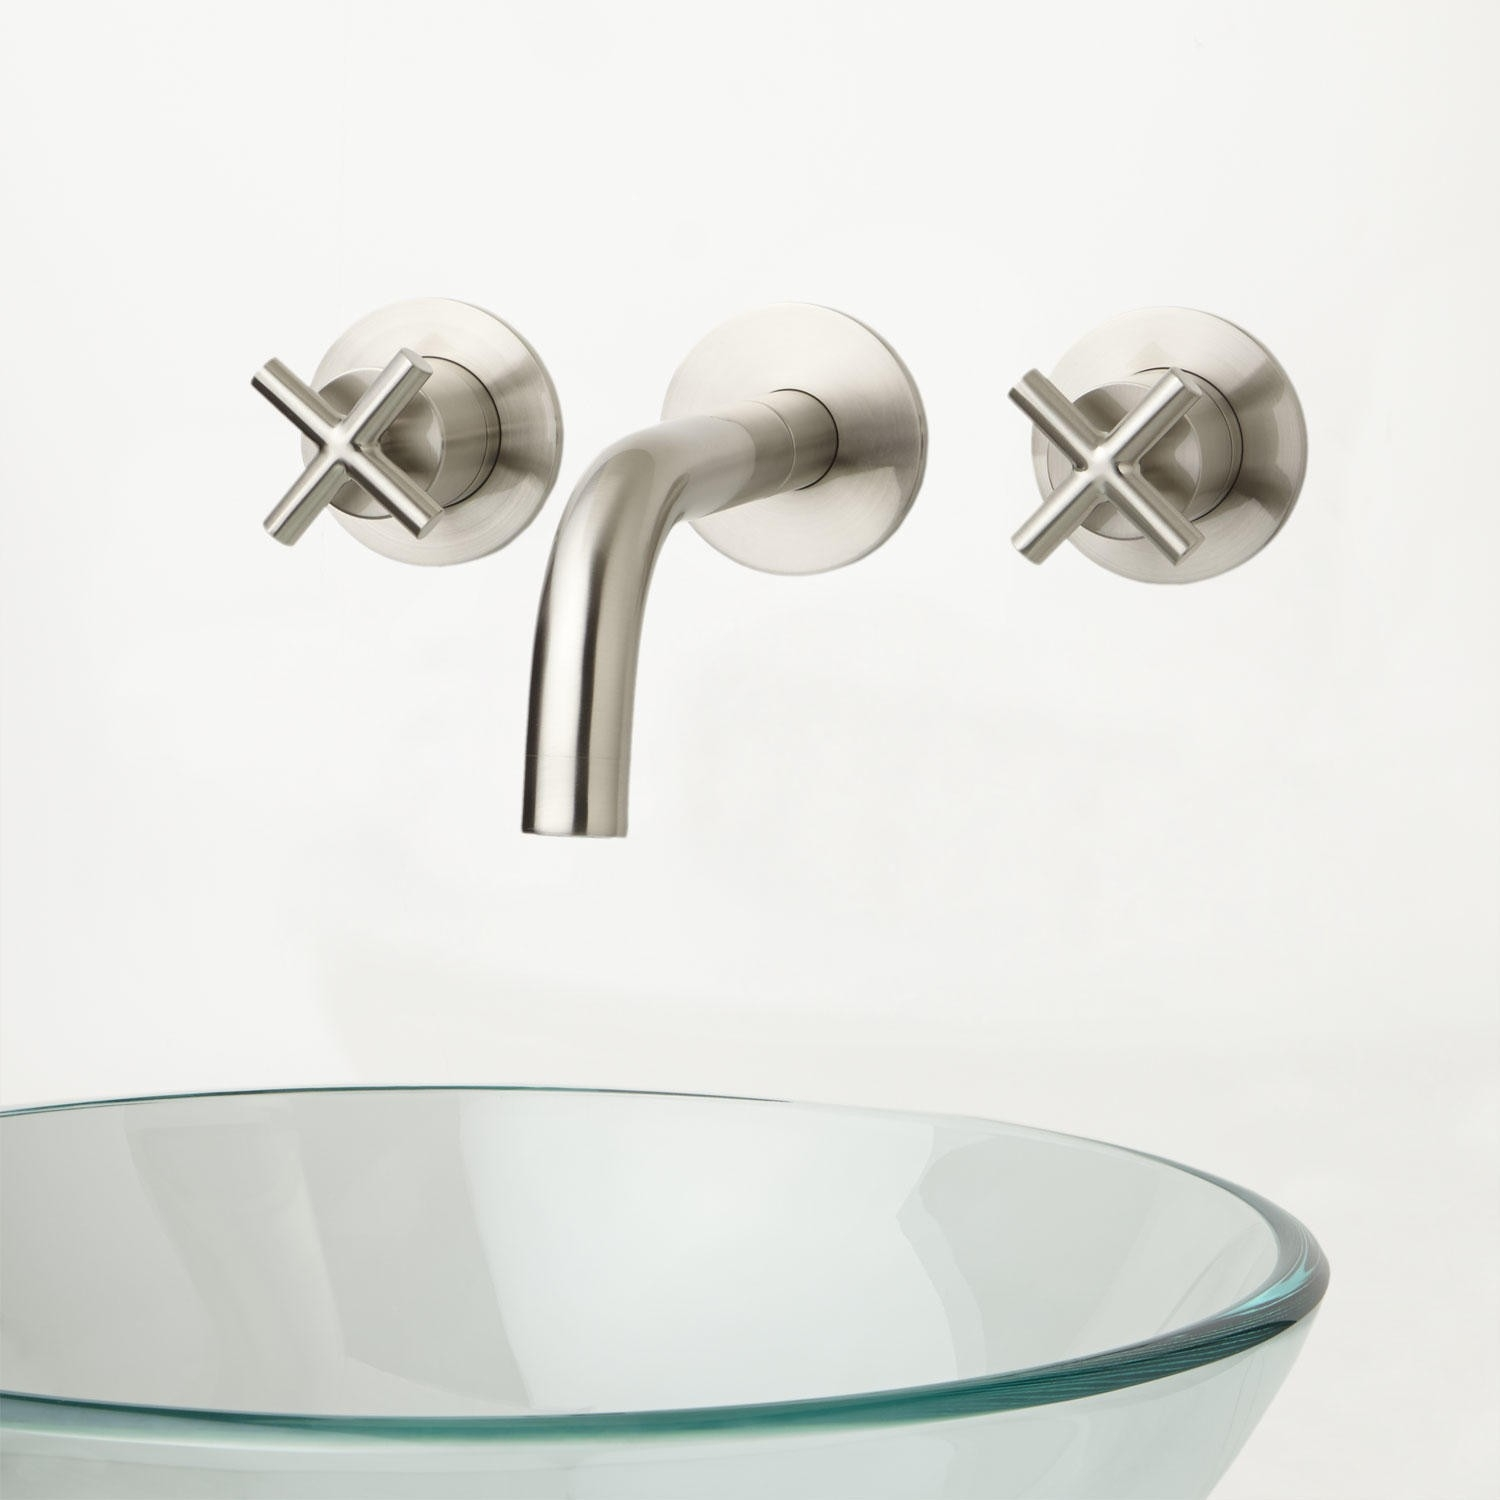 Ideas, exira wall mount bathroom faucet cross handles bathroom for size 1500 x 1500  .